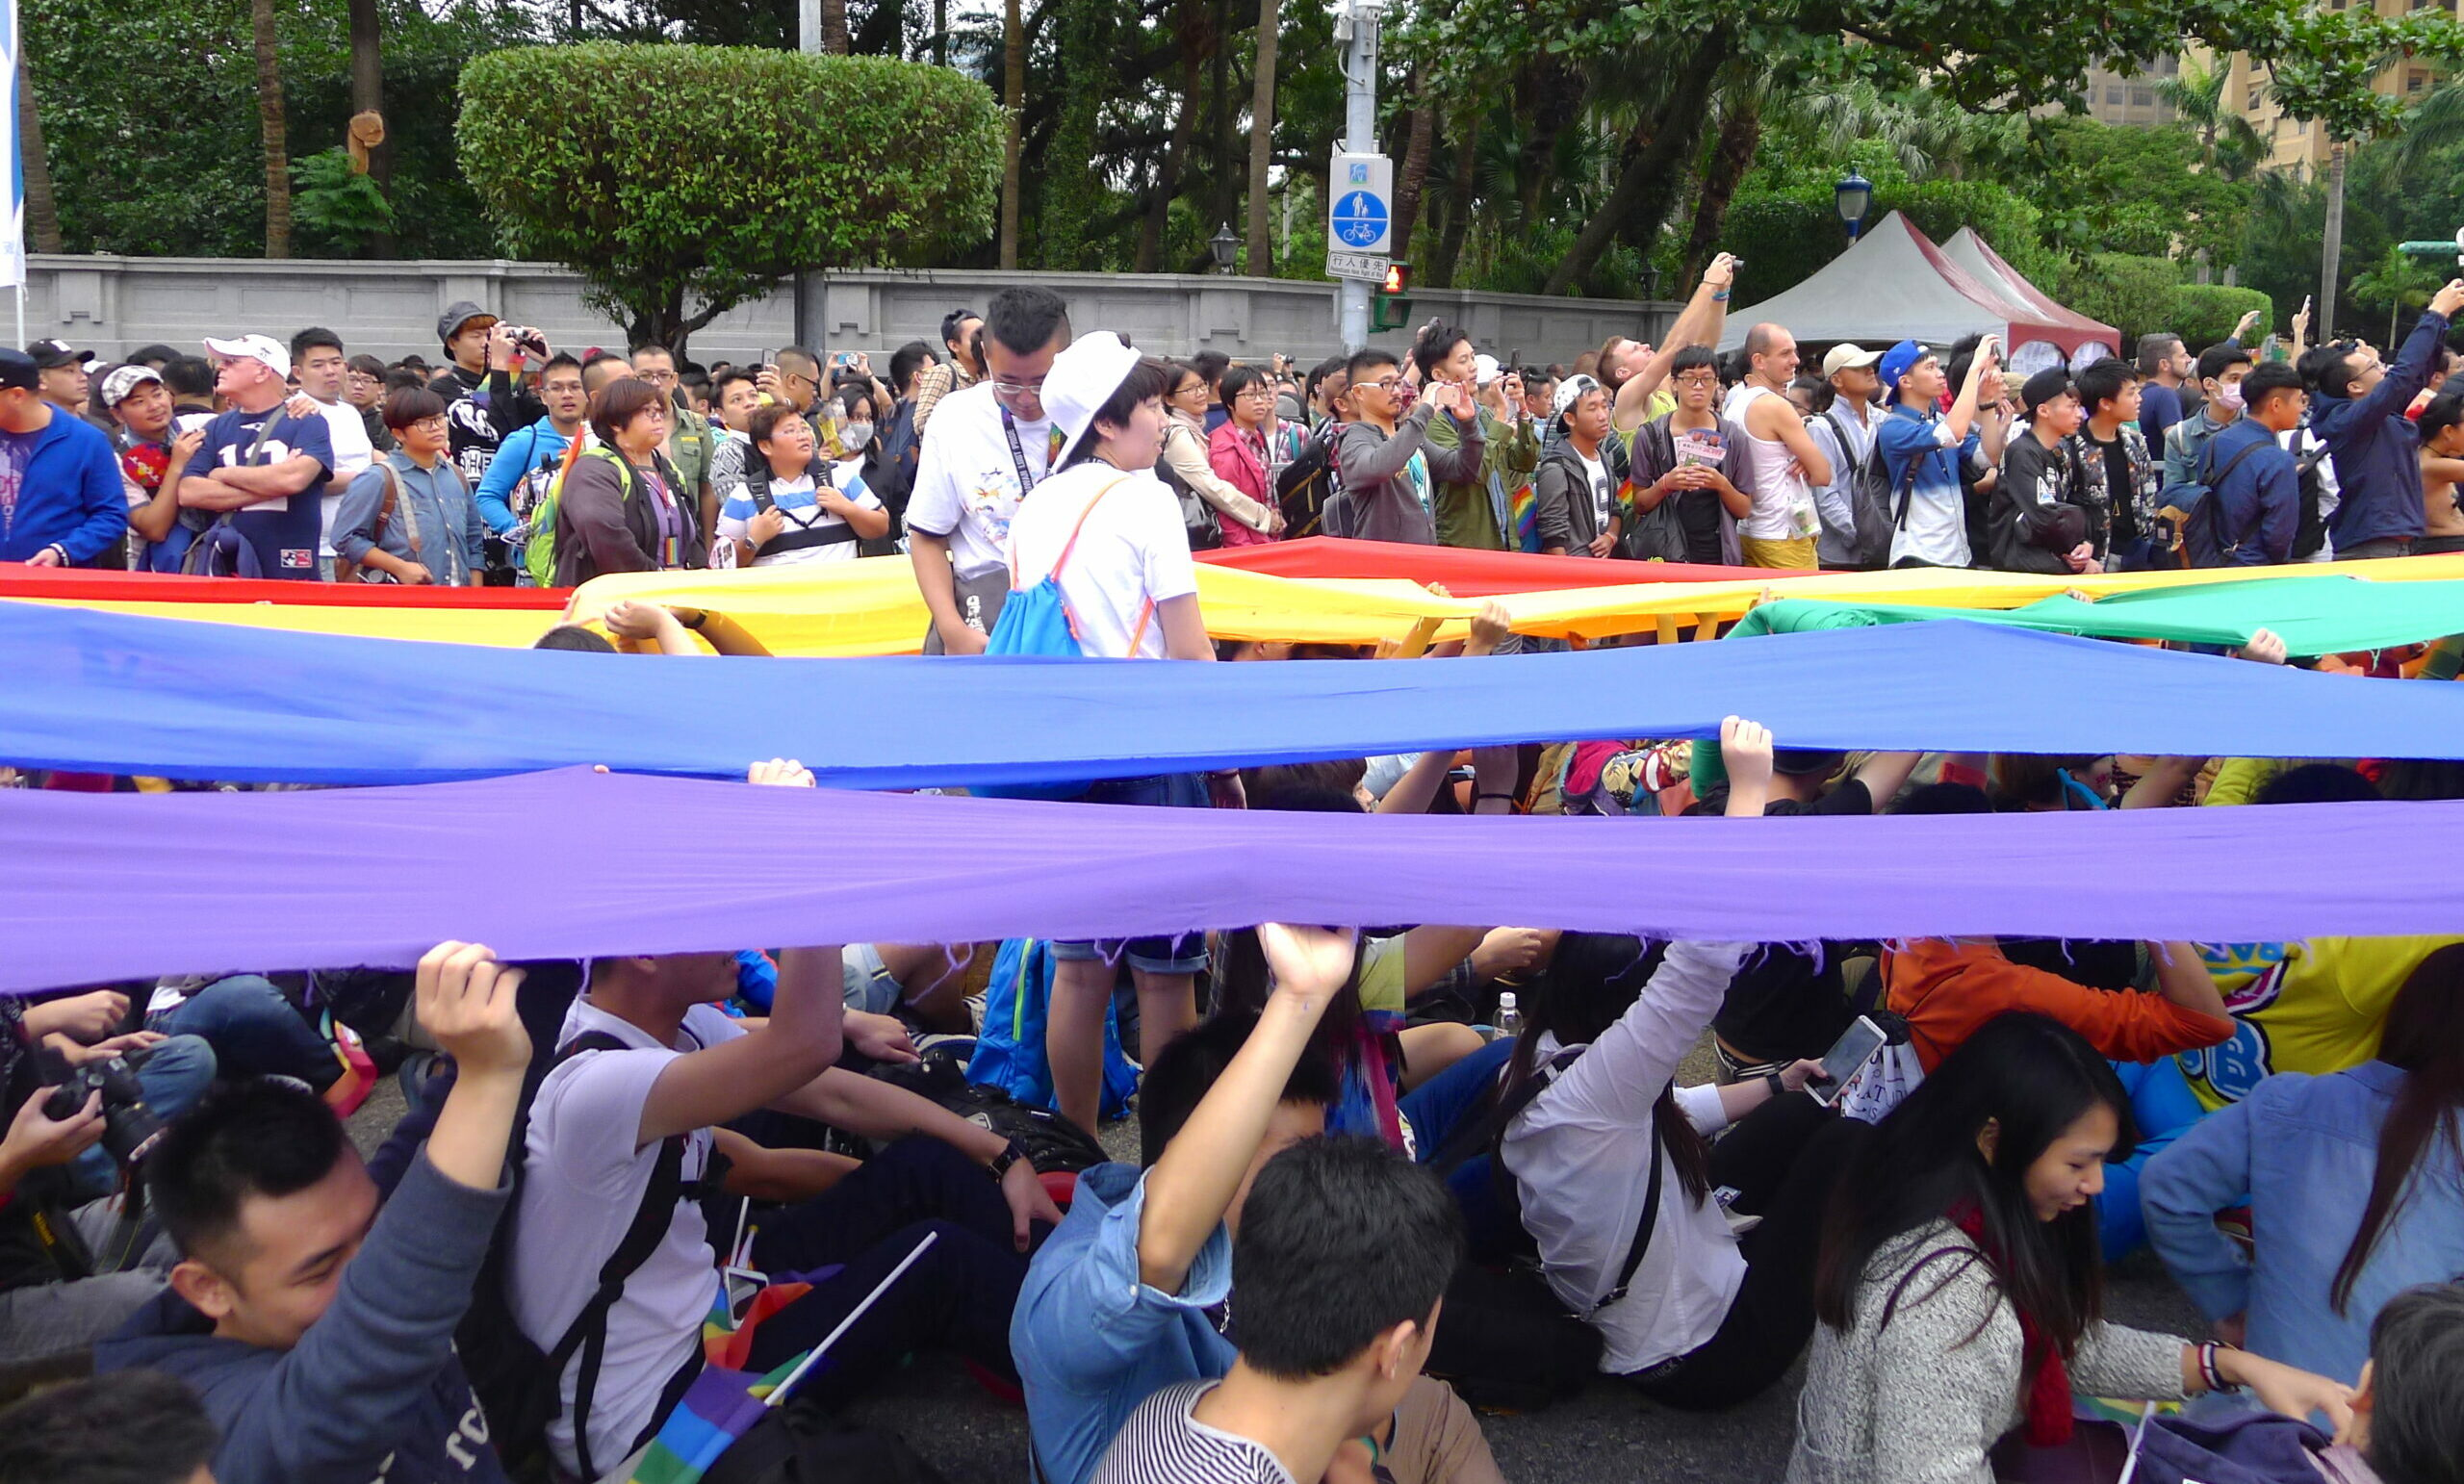 Photo from 2015 Taiwan Pride- people on the ground holding long rainbow colors fabric